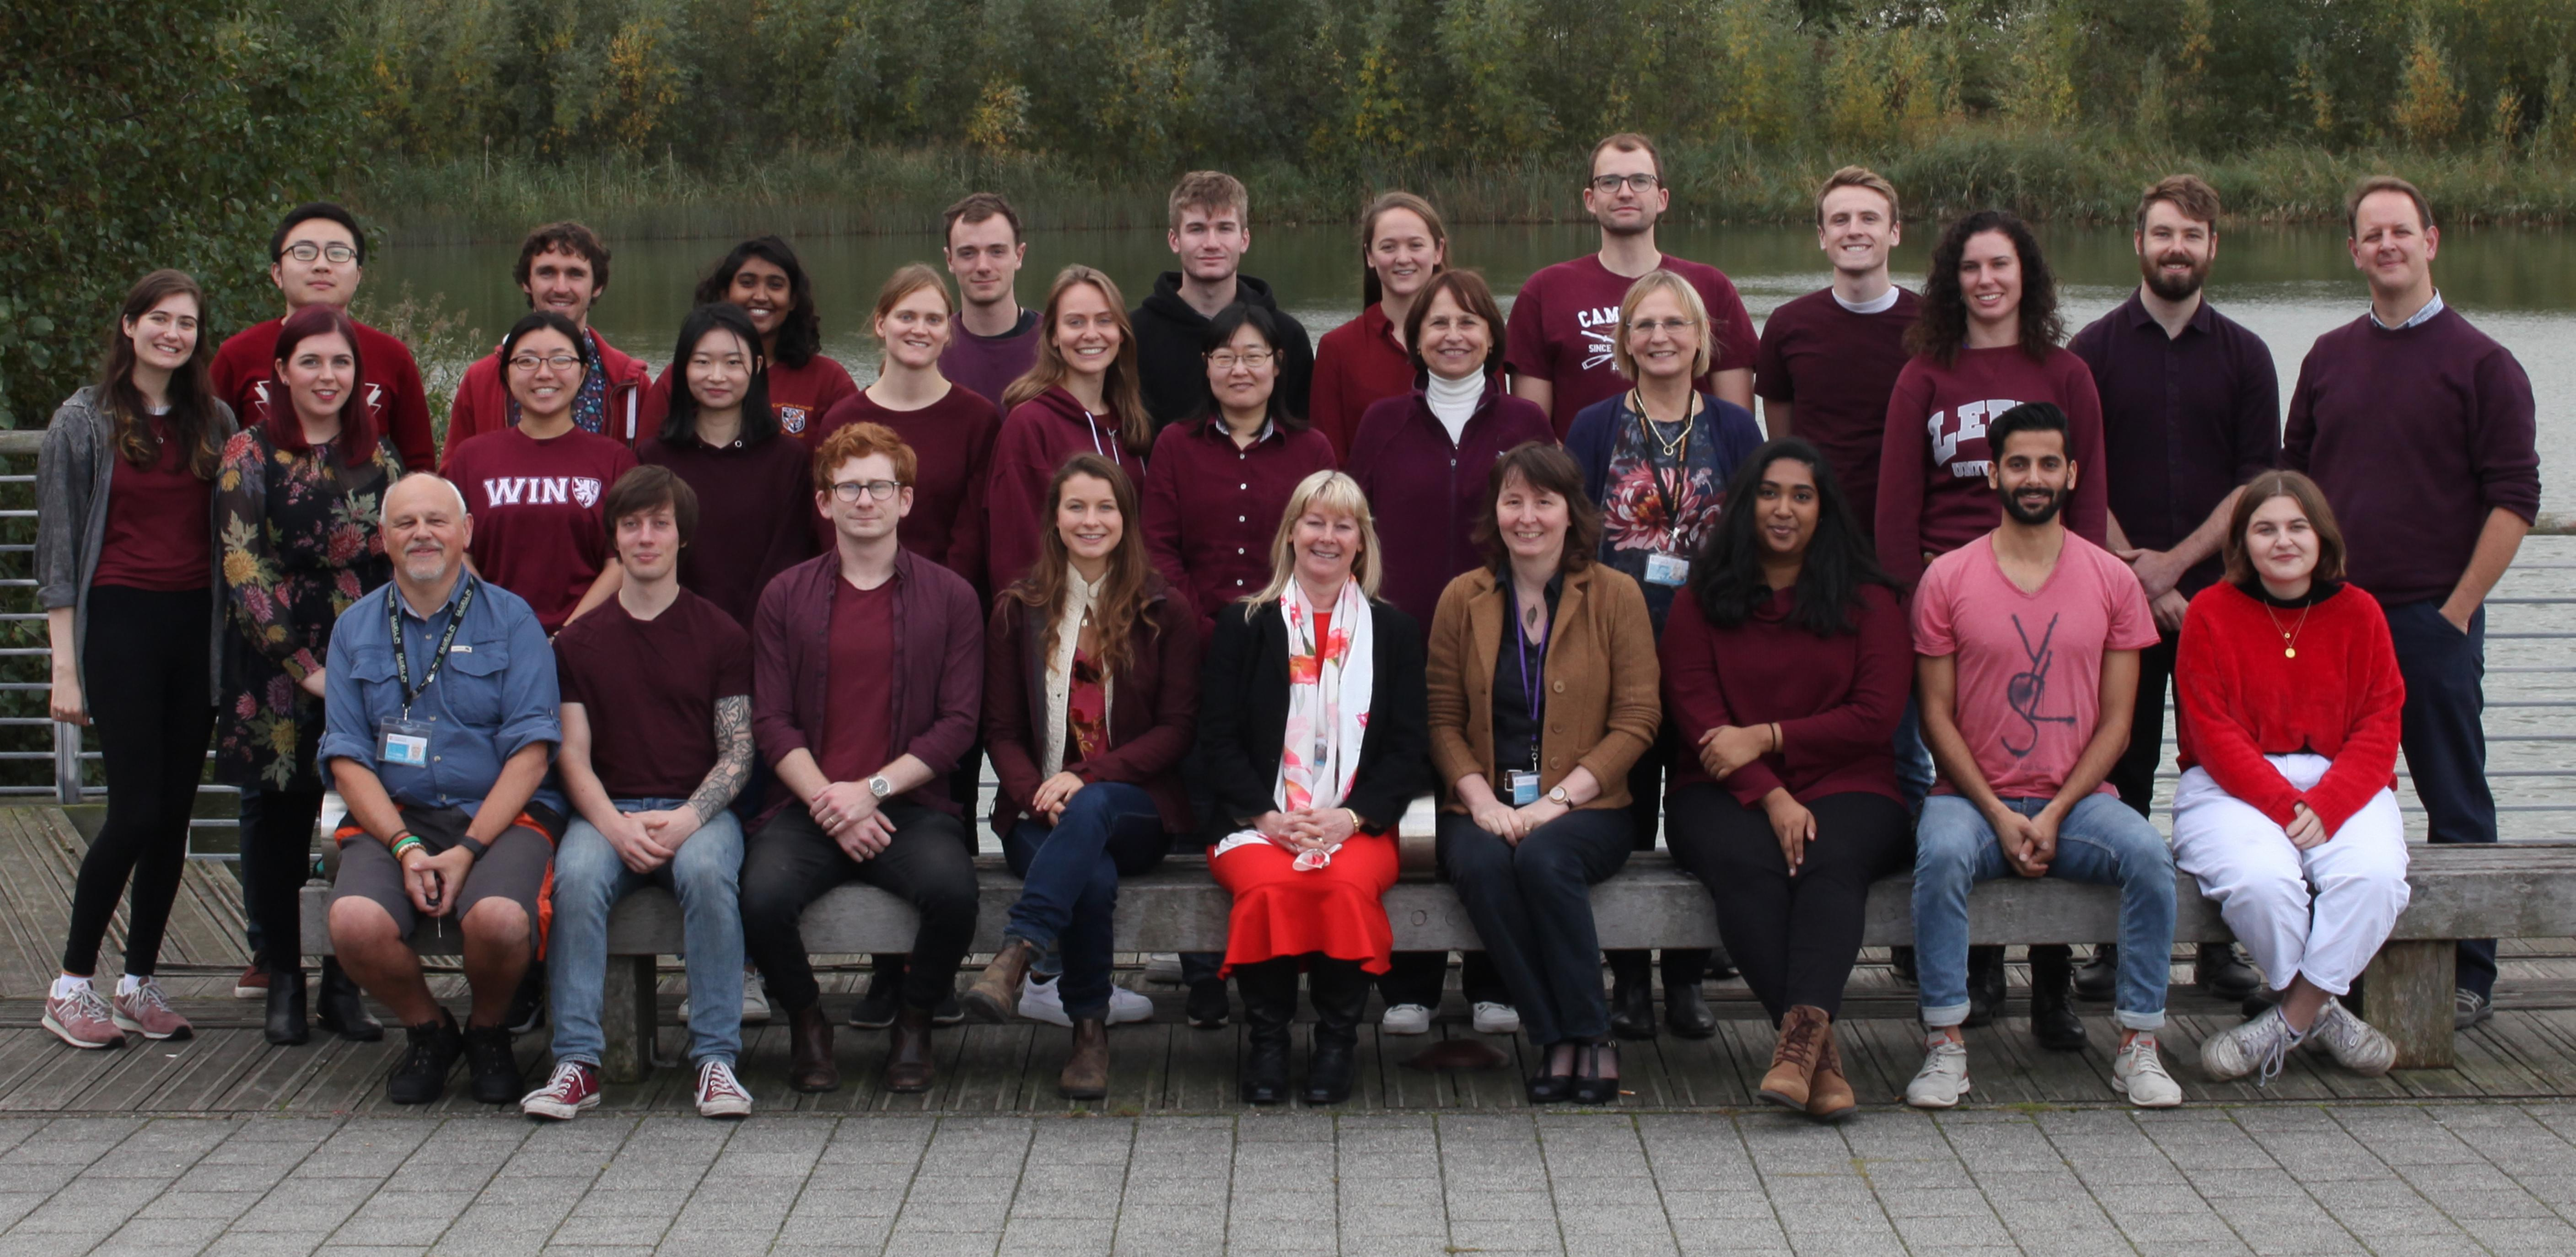 CCMM Group photograph taken in October 2019 outside the Department near to the lake